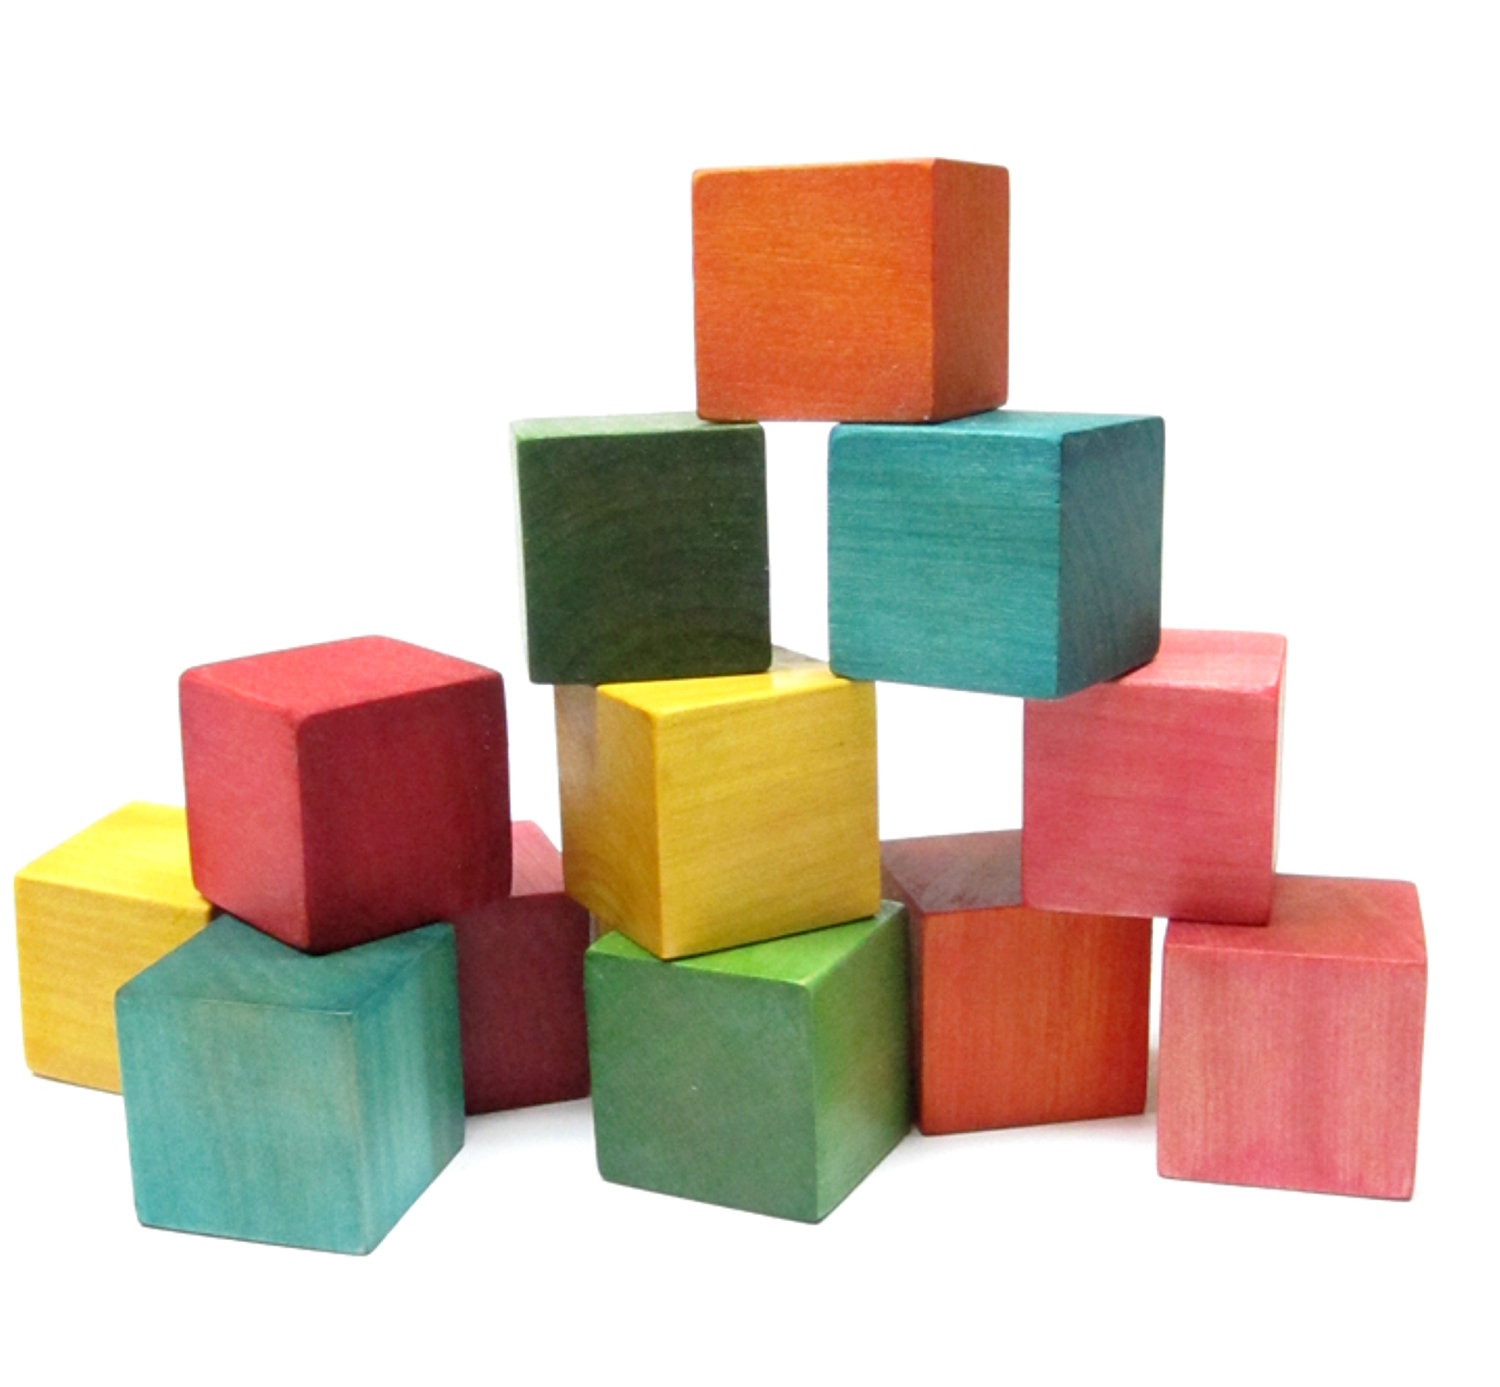 Free clipart building blocks graphic transparent stock Building Blocks Clipart - Clipart Kid graphic transparent stock